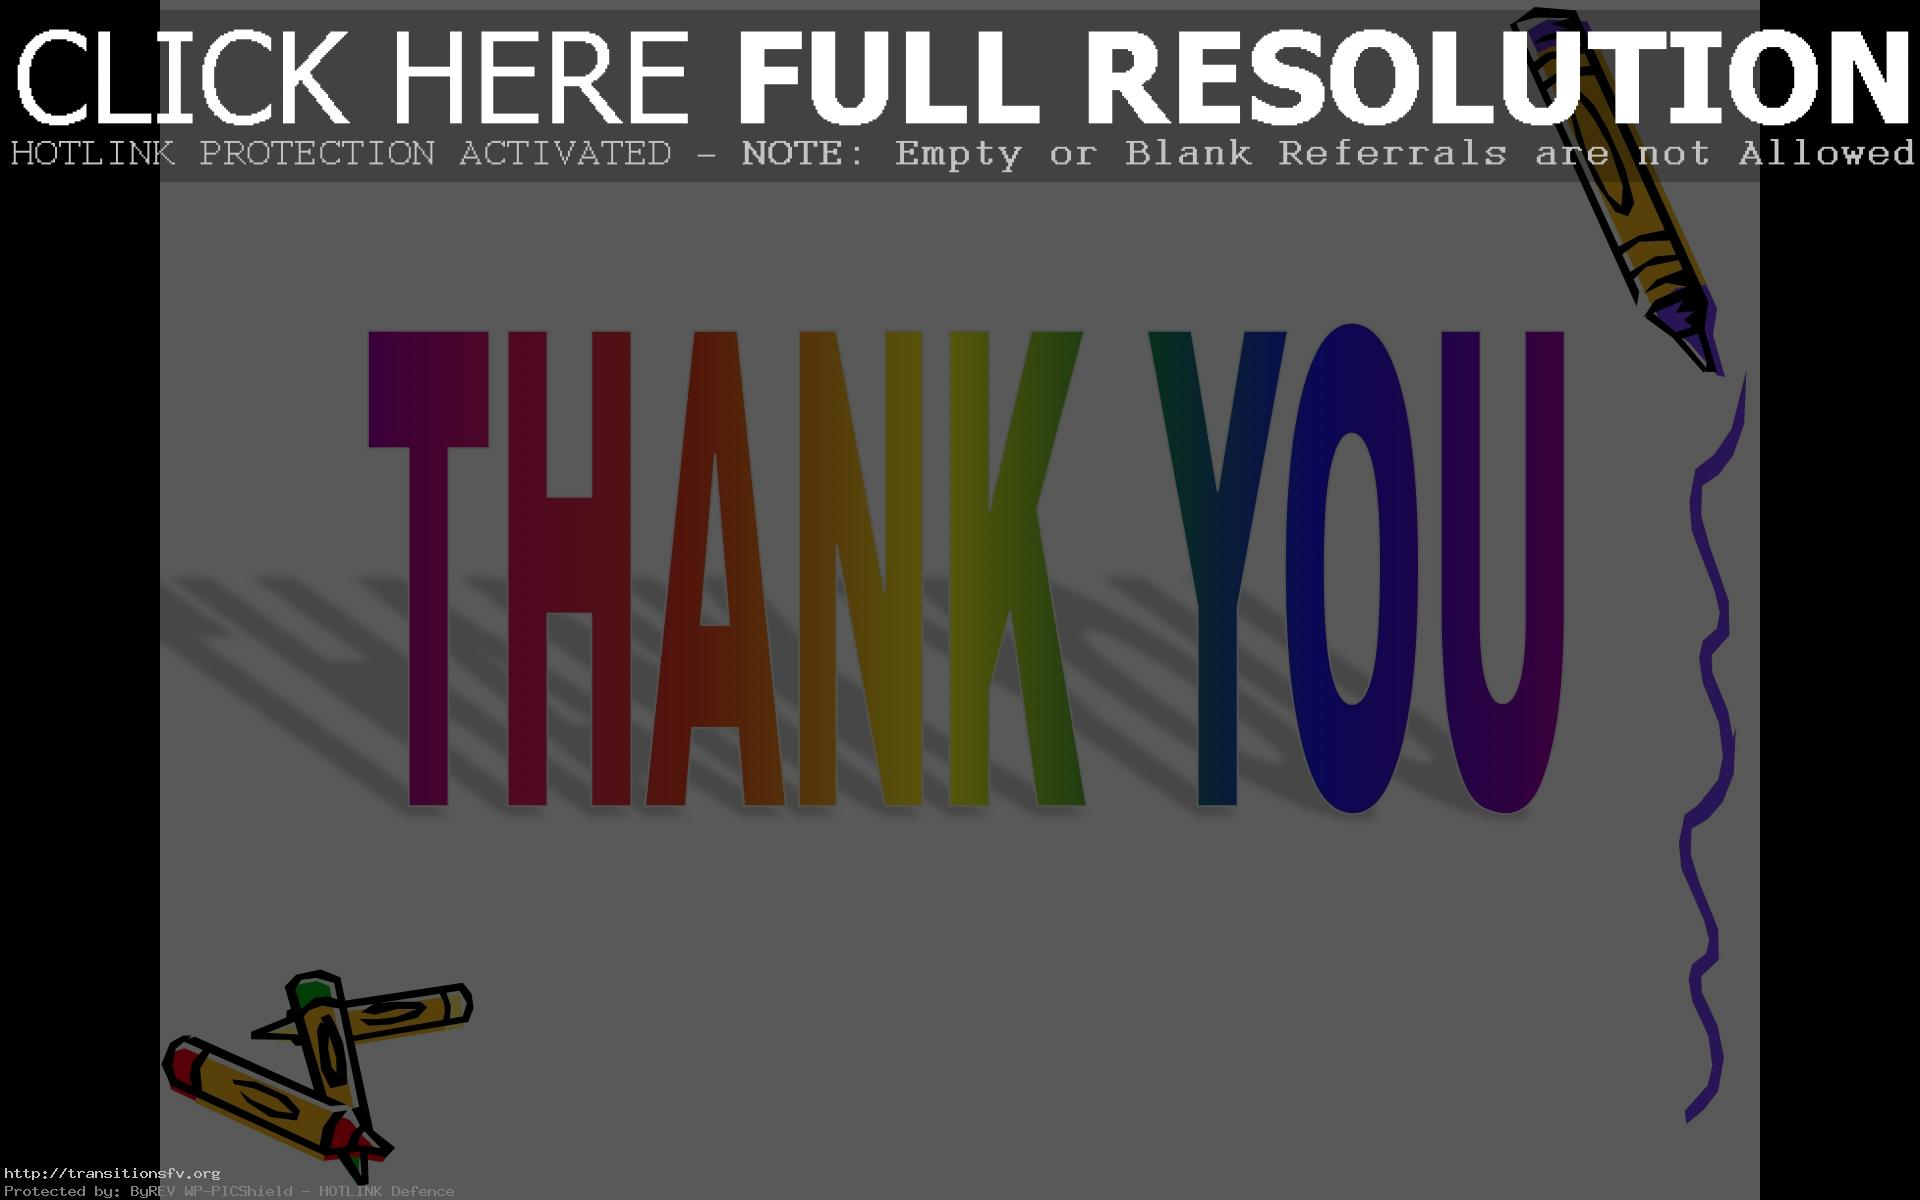 Animated Thank You Images For Powerpoint Presentations - Animated Thank You PNG For Powerpoint